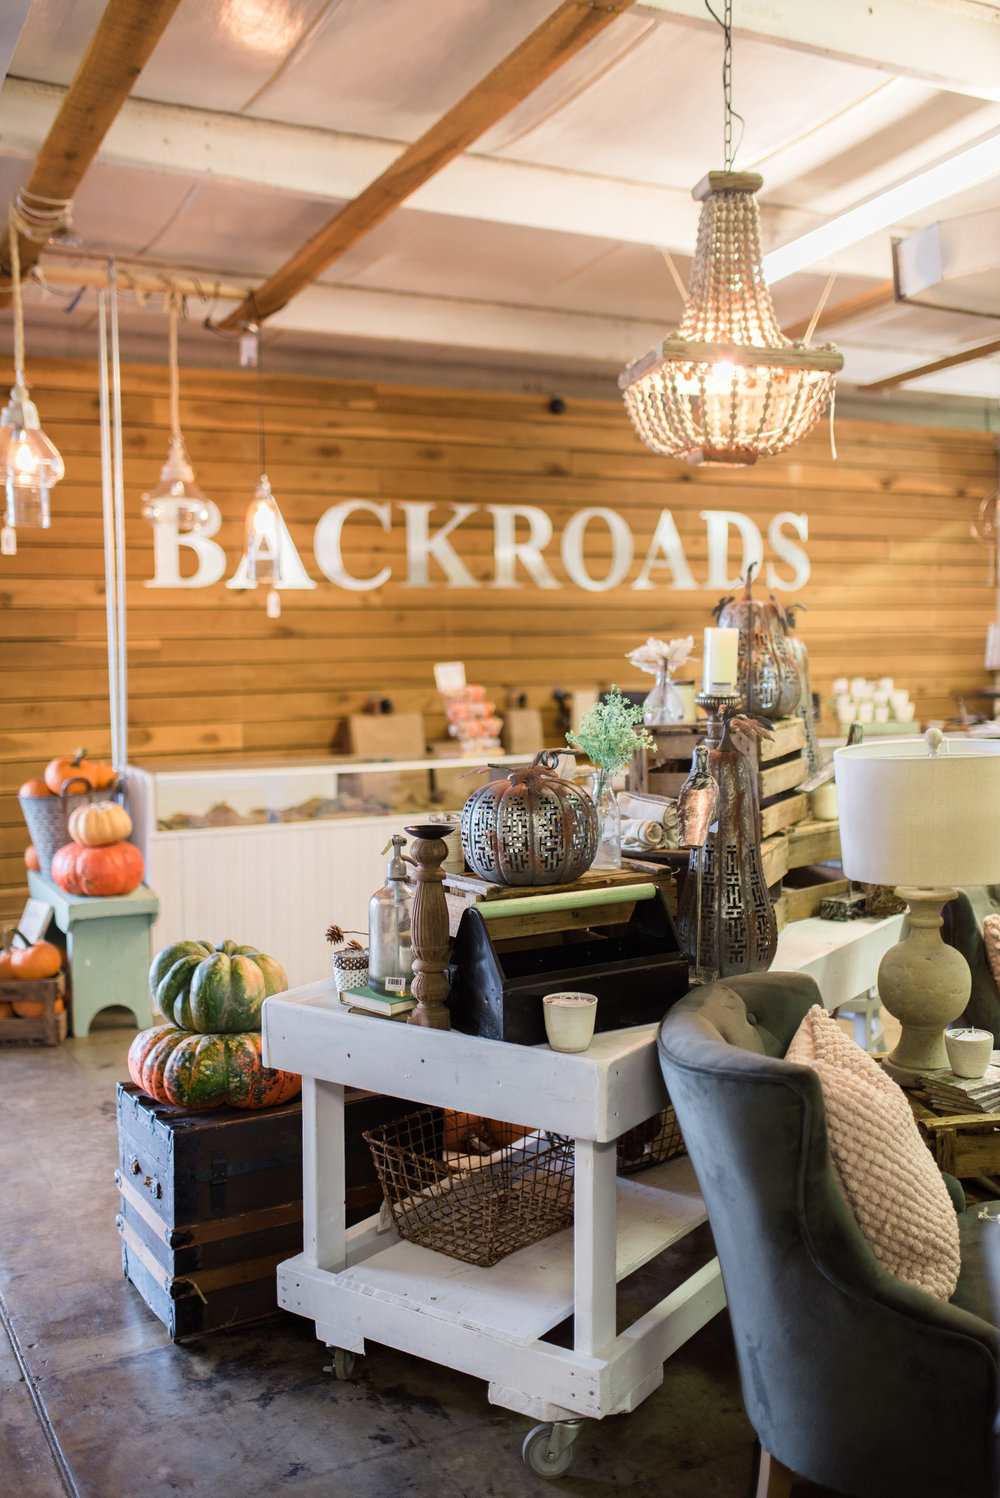 I Love Local Knoxville, TN - Backroads Market & Designs-6680.jpg